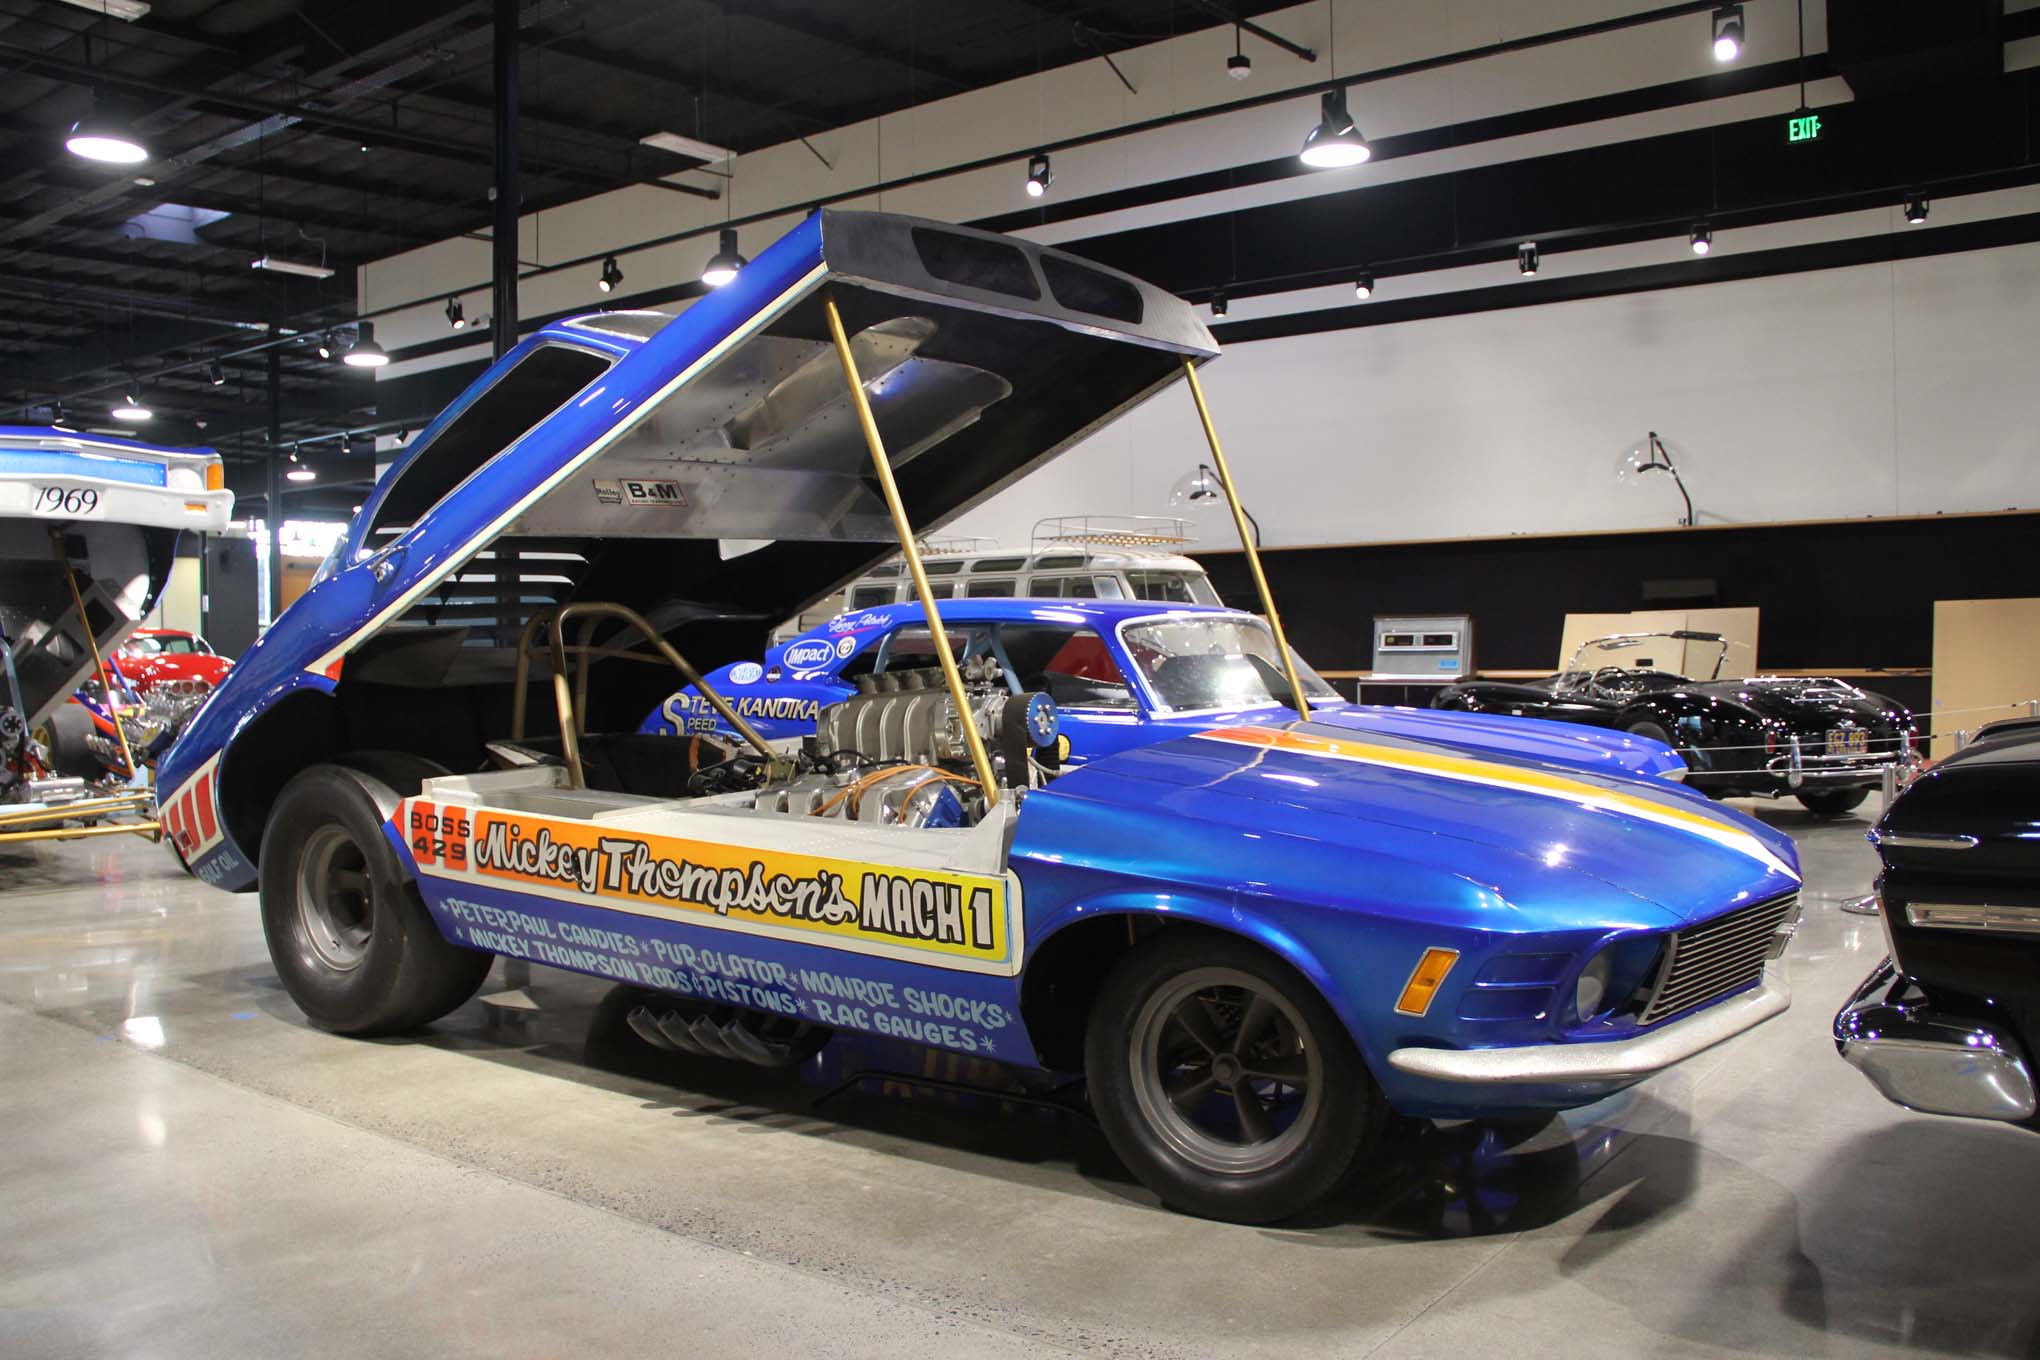 Many of the cars used in the drag-racing display are significant in different ways. Though Mickey Thompson's monocoque Mustang Funny Car from 1969 was too heavy to be competitive, it stands as a state-of-the-art-for-the-time's attempt to blend road racing and Funny Car chassis construction.